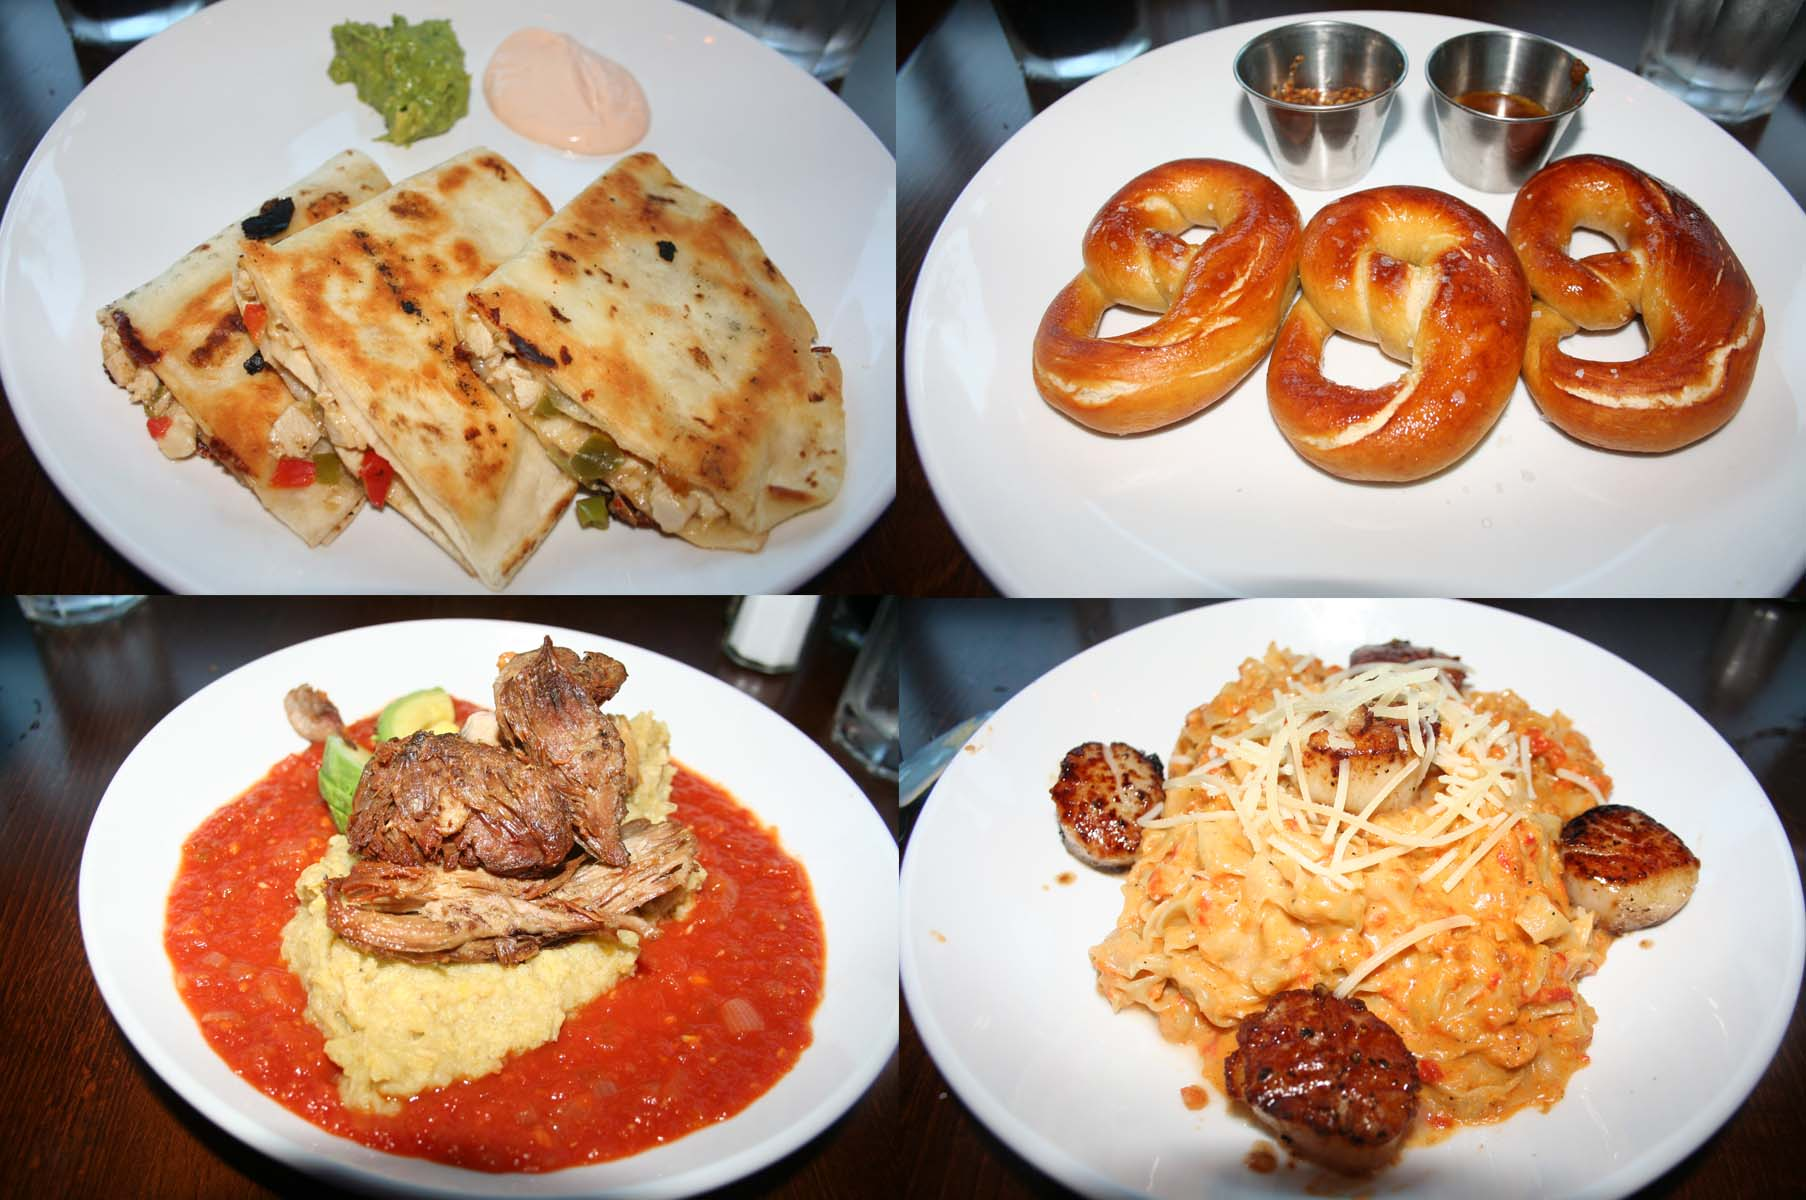 Appetizers include (top, l to r) grilled chicken and pepper quesadilla and soft pretzels. Entrees (bottom, l to r) include the Puetro Rican mofongo and the seared scallops. (Photos: Mark Heckathorn/DC on Heels)